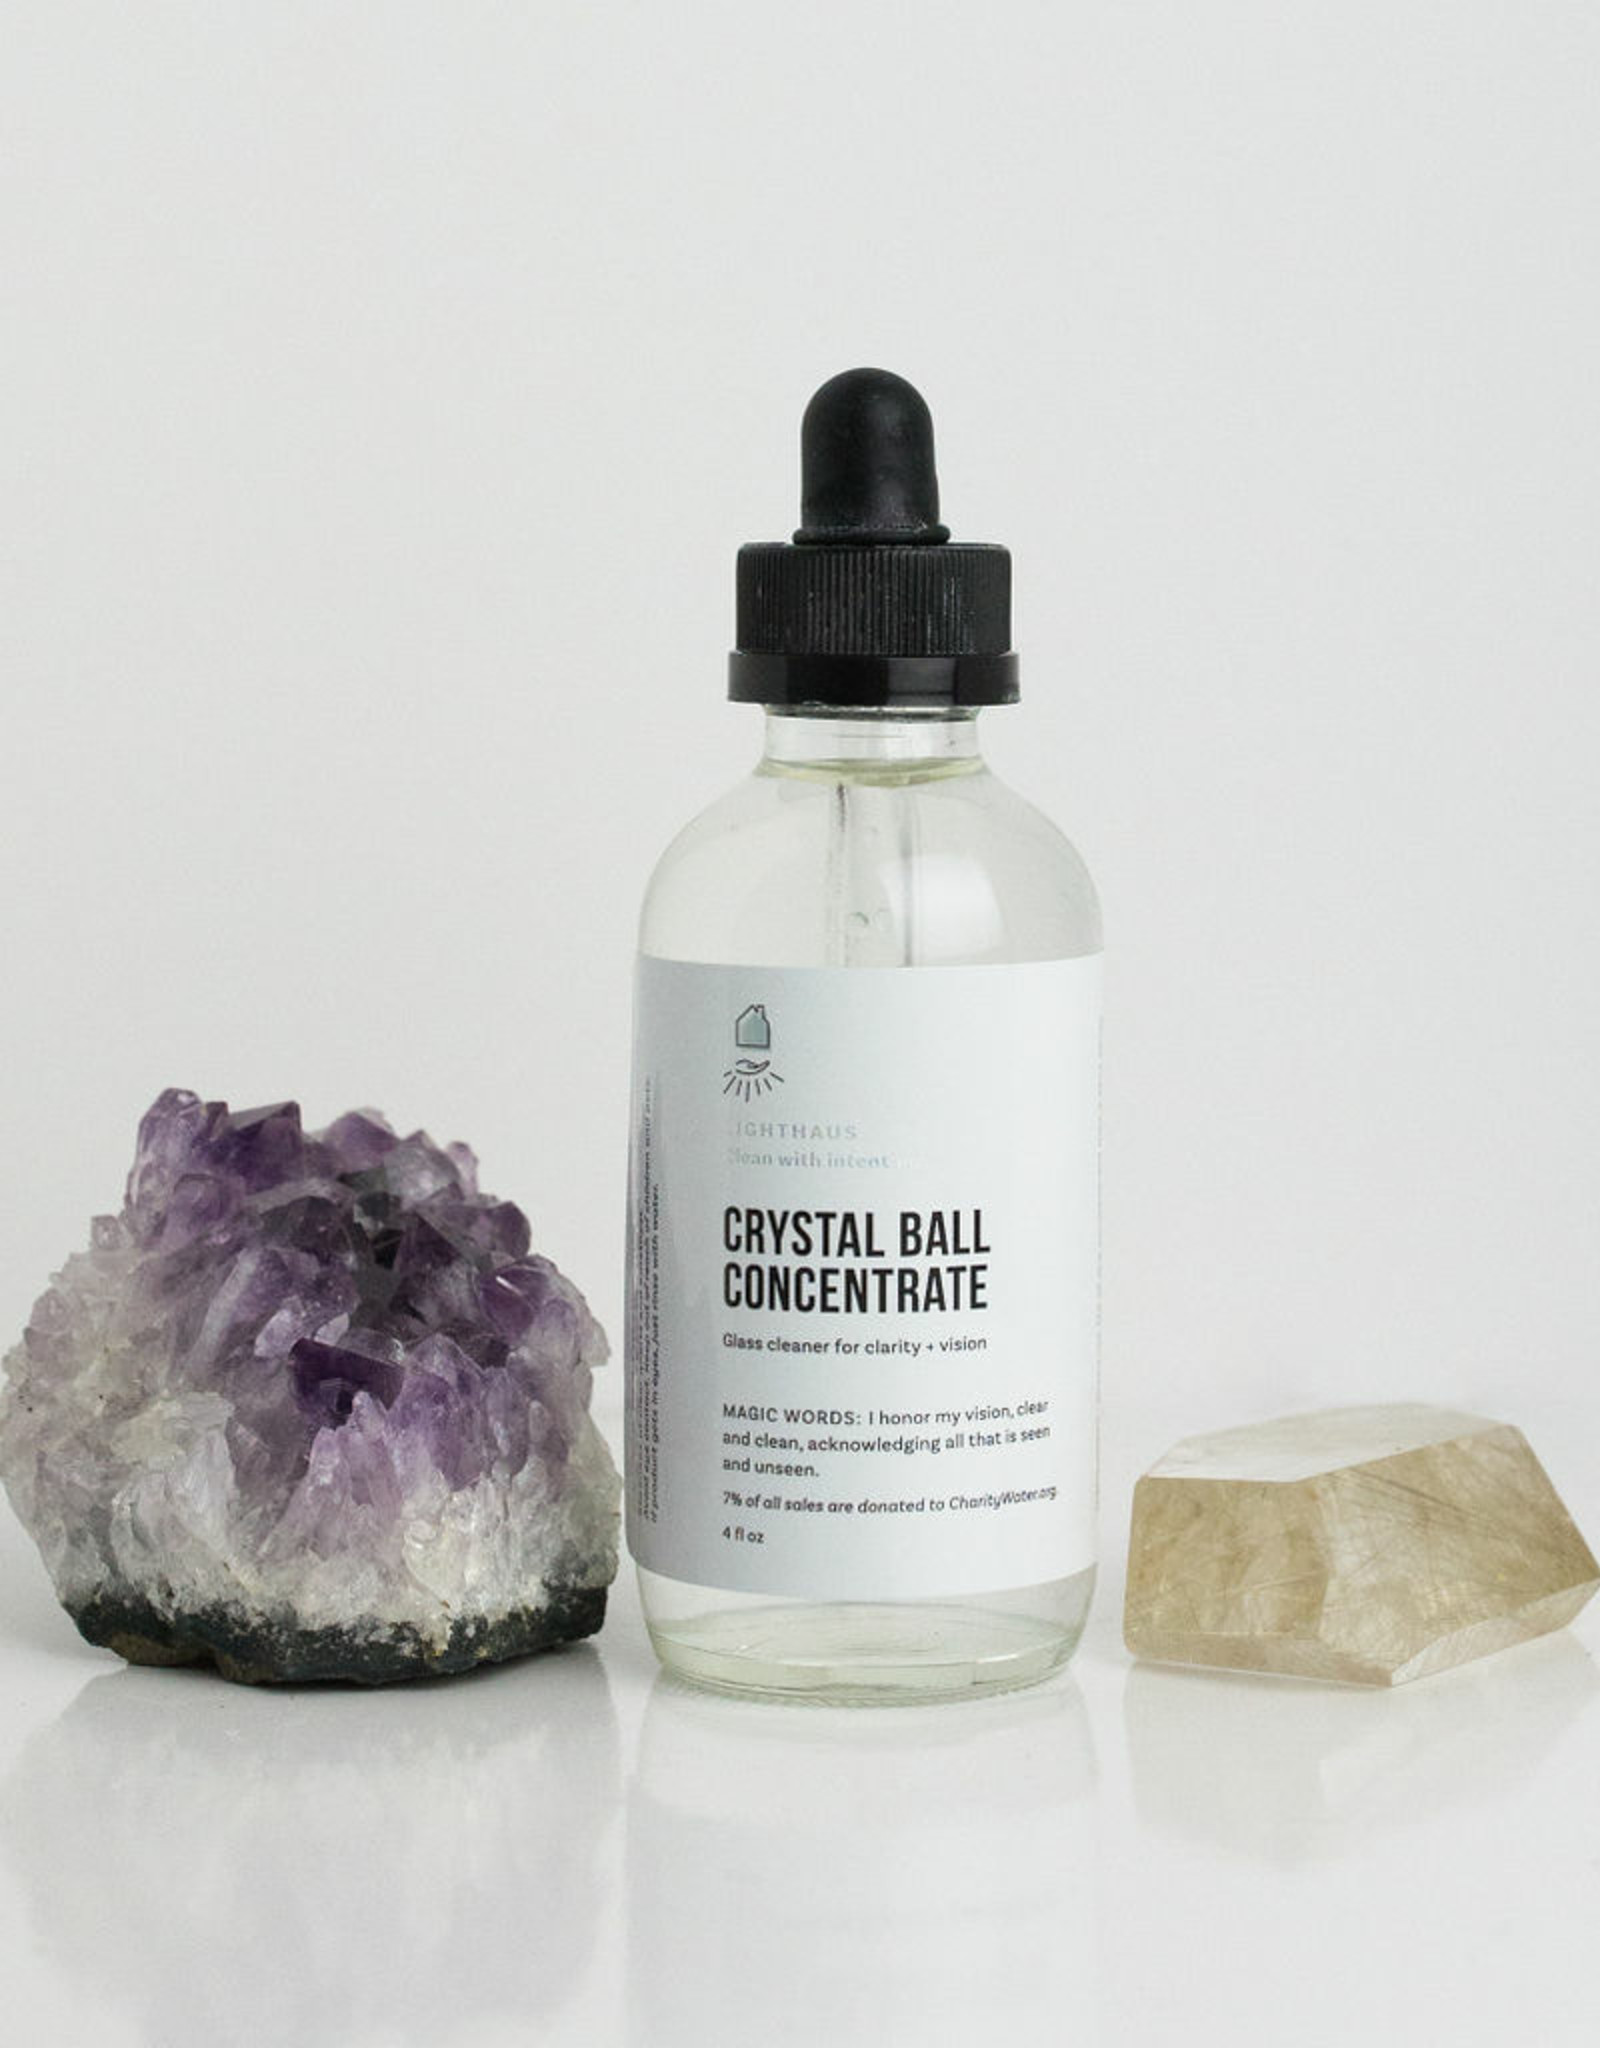 LightHaus Crystal Ball Concentrate